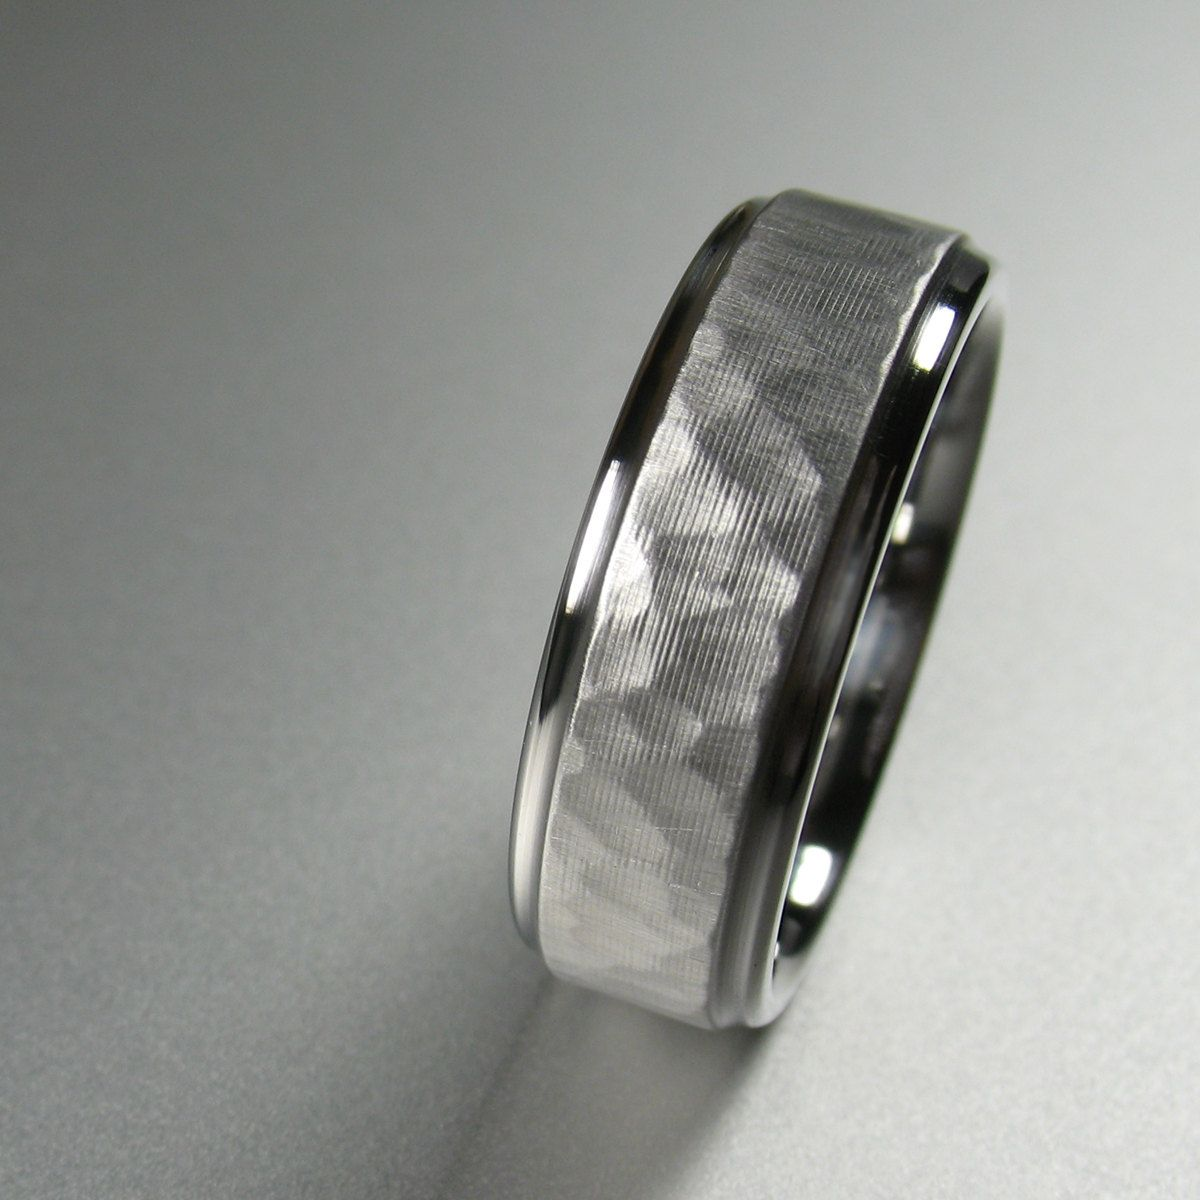 wedding band. i love the hammered metal and bevel, it hides